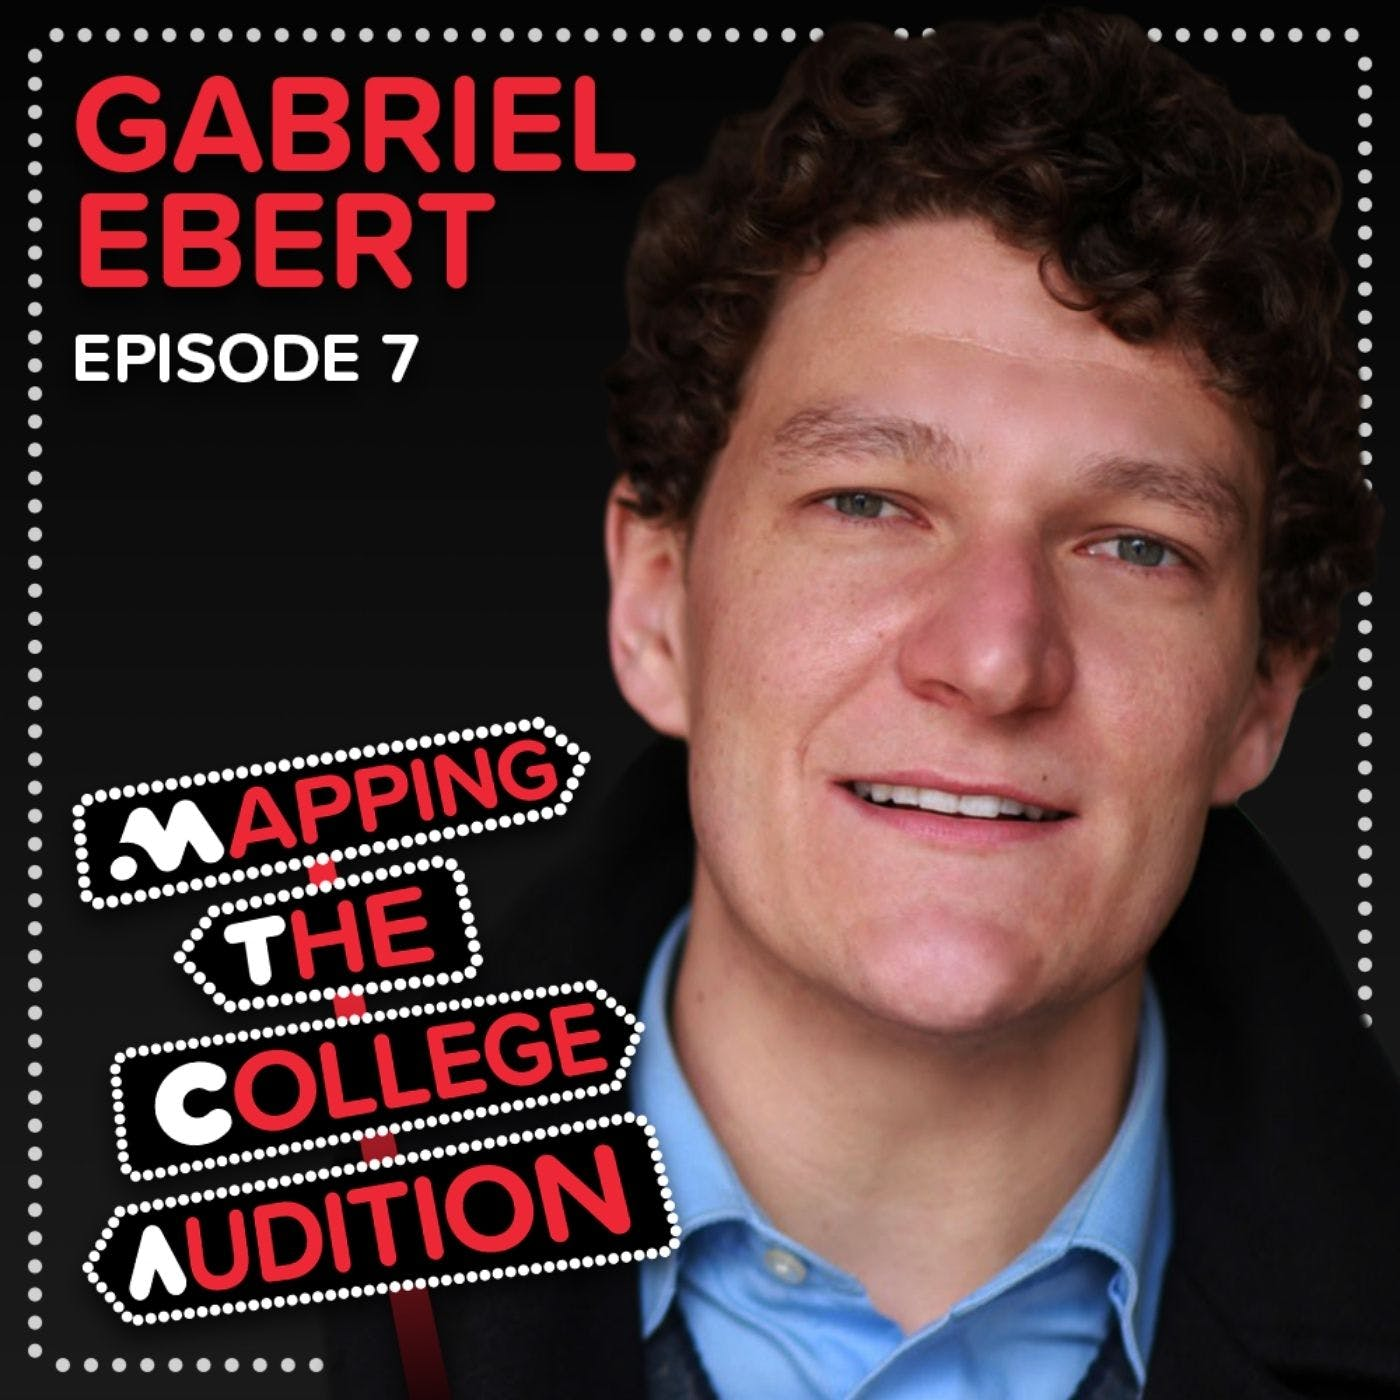 Ep. 7 (AE): Gabriel Ebert (Tony Award Winner, Matilda) on Feeling Seen in an Audition Room, Choosing Well Known Audition Pieces, Translating TV to stage, & Winning Audition Rooms in the Virtual World